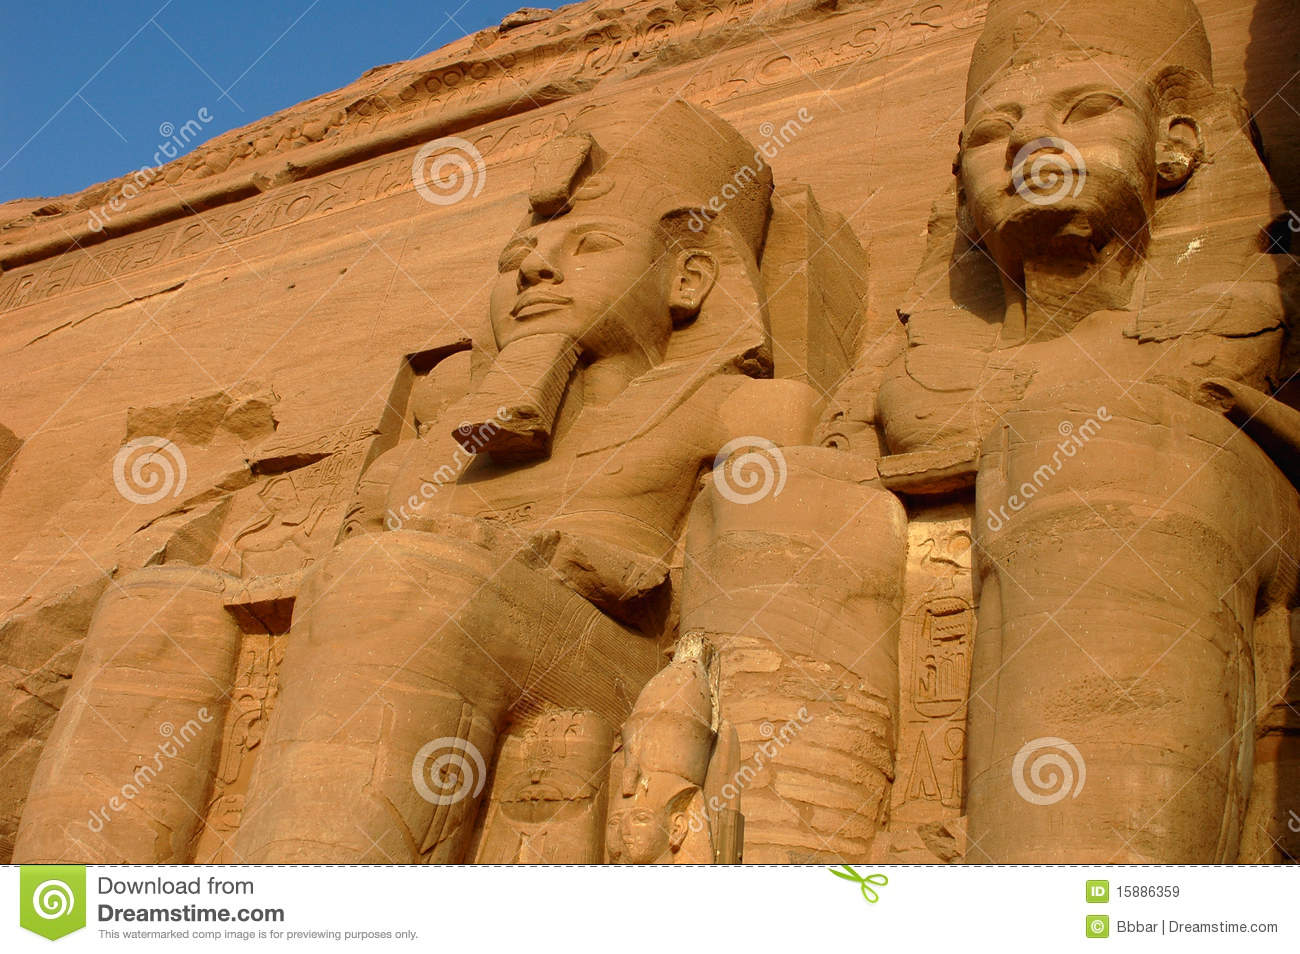 ramses ii essay An amazing array of royal mummies, including seti i and ramesses ii lay in   this essay will attempt to fill in some of the earlier parts of the story, and tell of a.